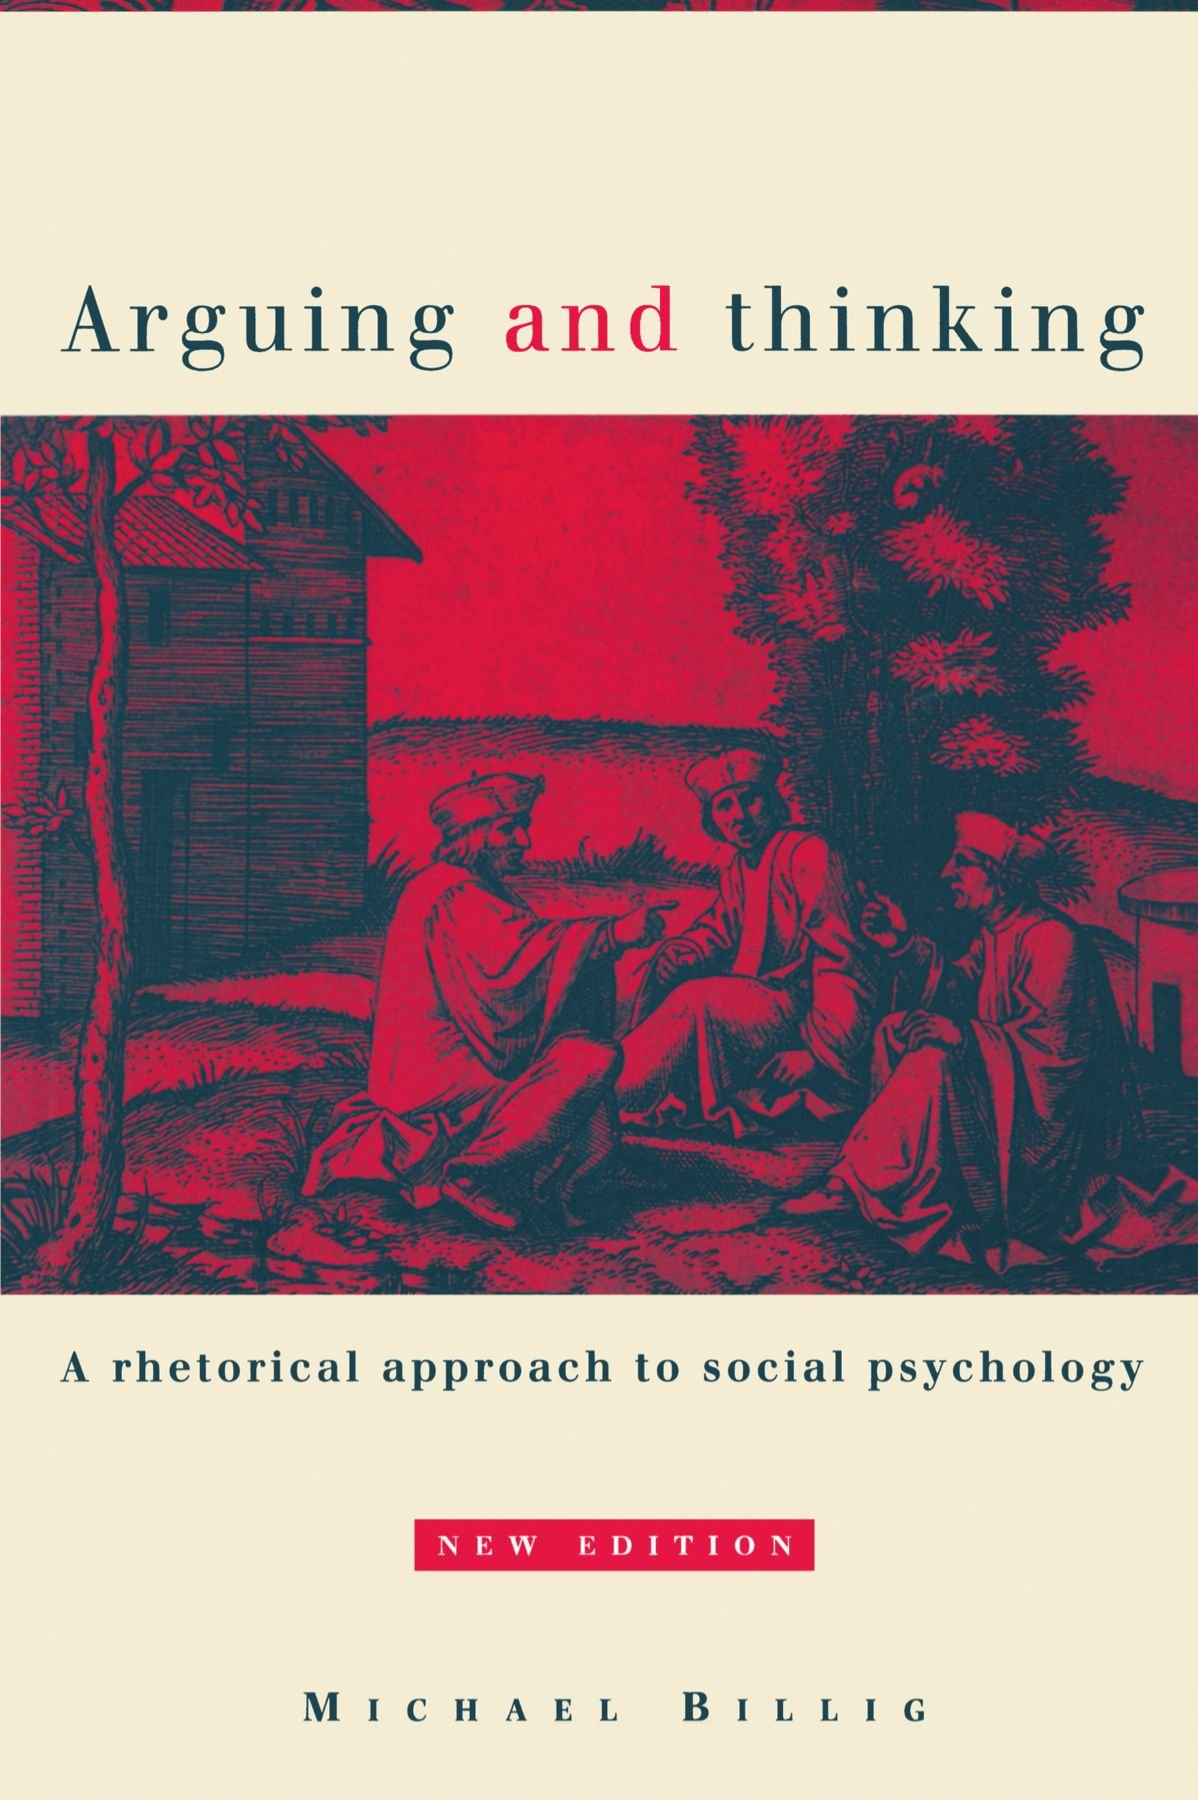 rhetoric ideology and social psychology essays in honour of arguing and thinking a rhetorical approach to social psychology european monographs in social psychology